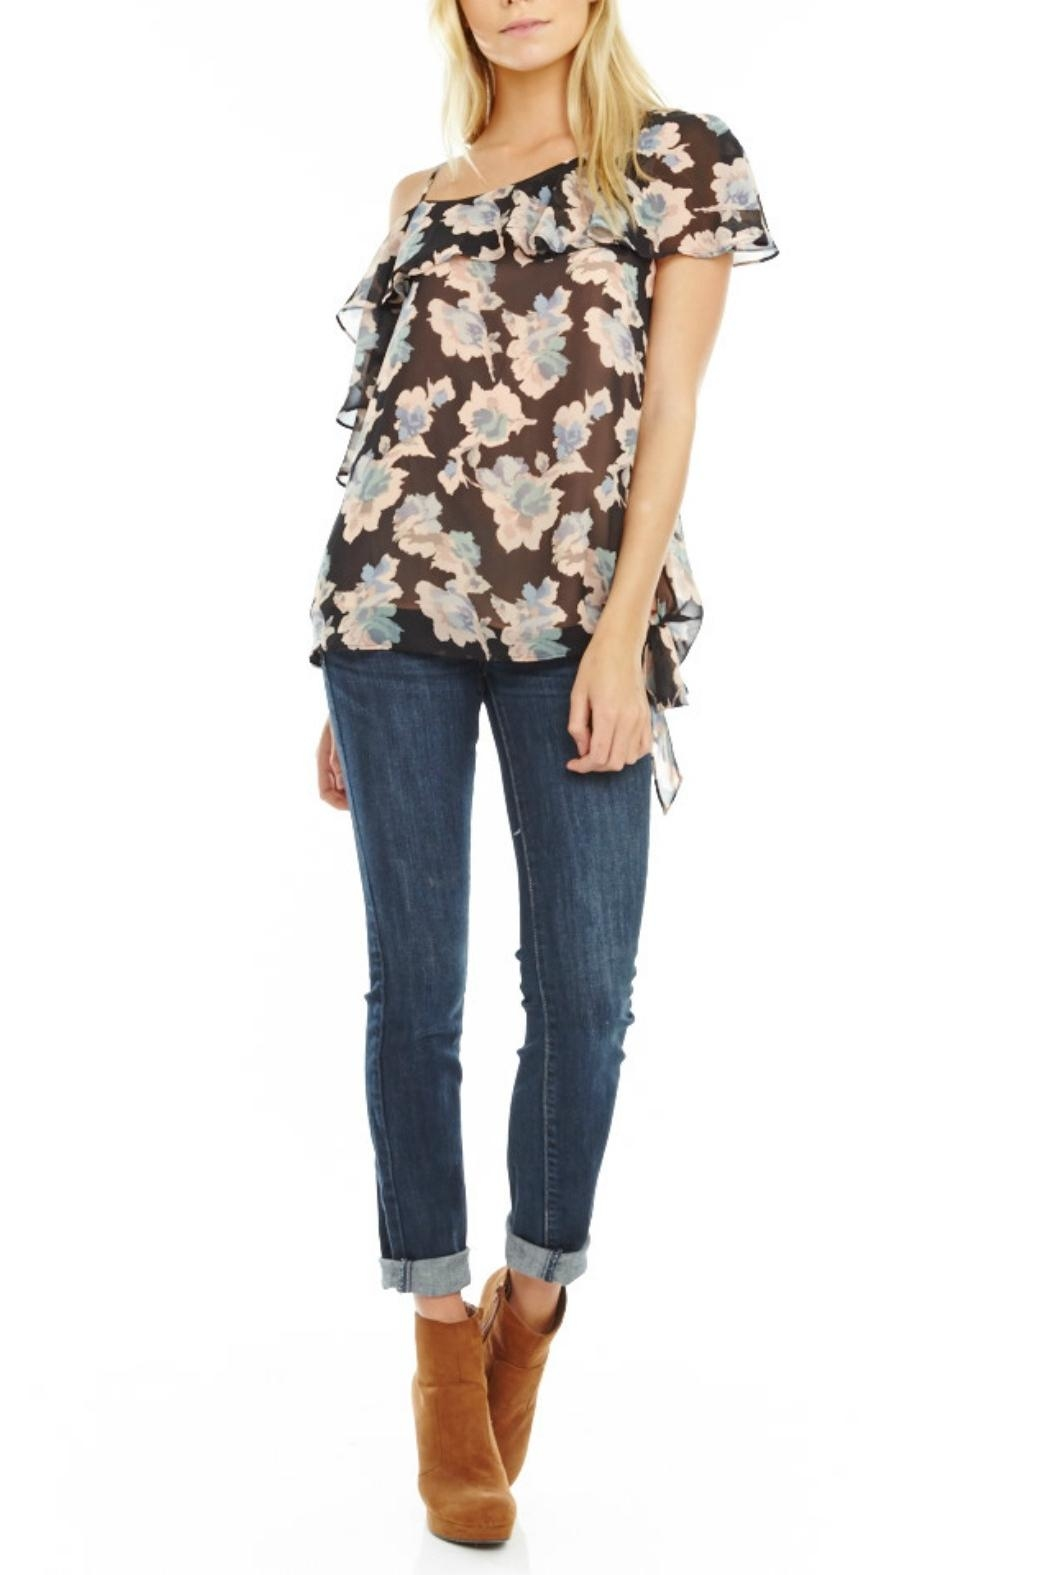 Mabel & Mary Moonlight One-Shoulder Top - Main Image